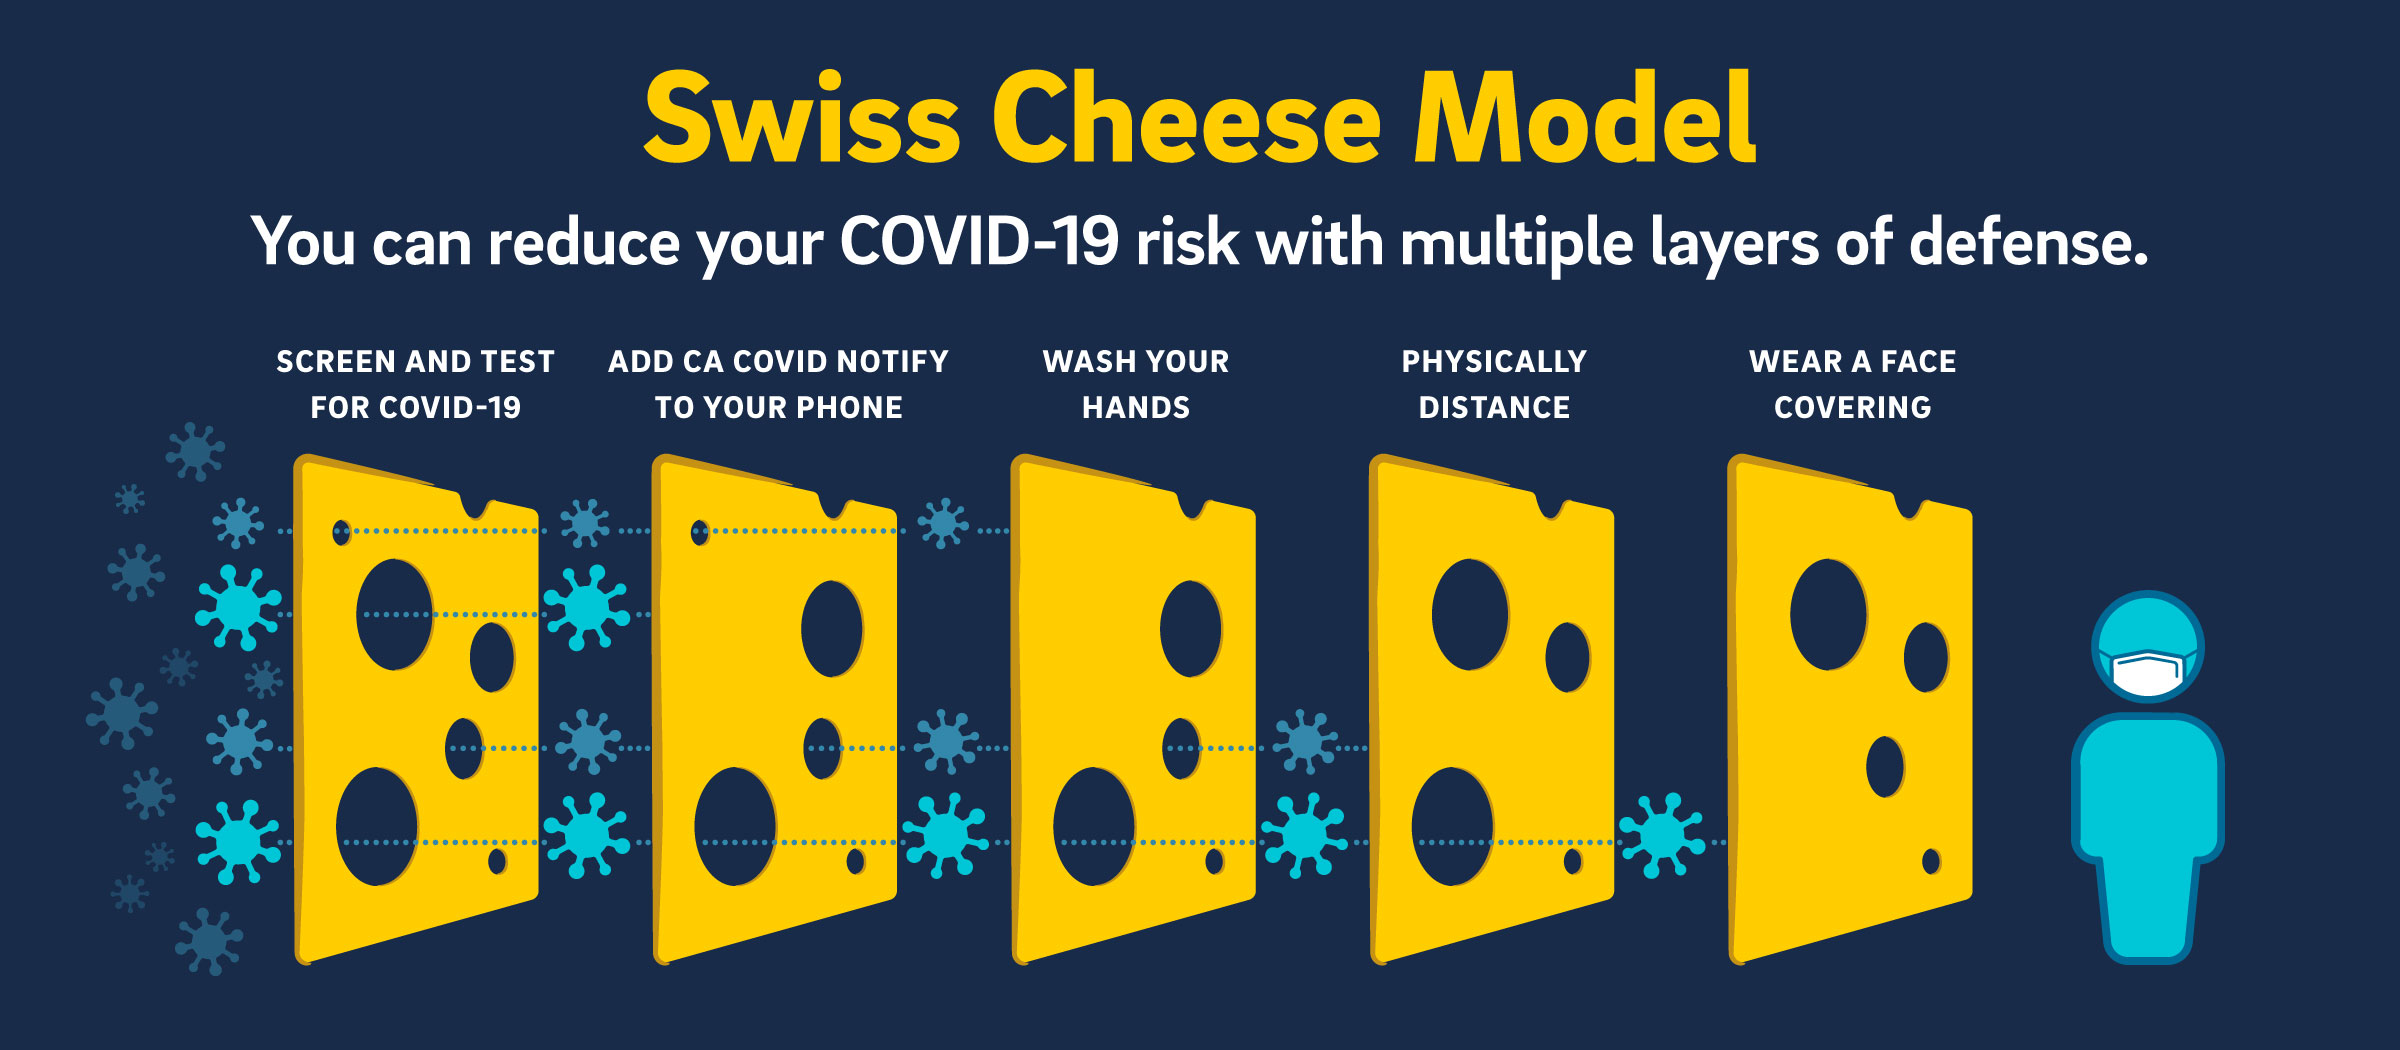 Swiss Cheese Model. Reduce your COVID-19 risk with multiple layers of defense.